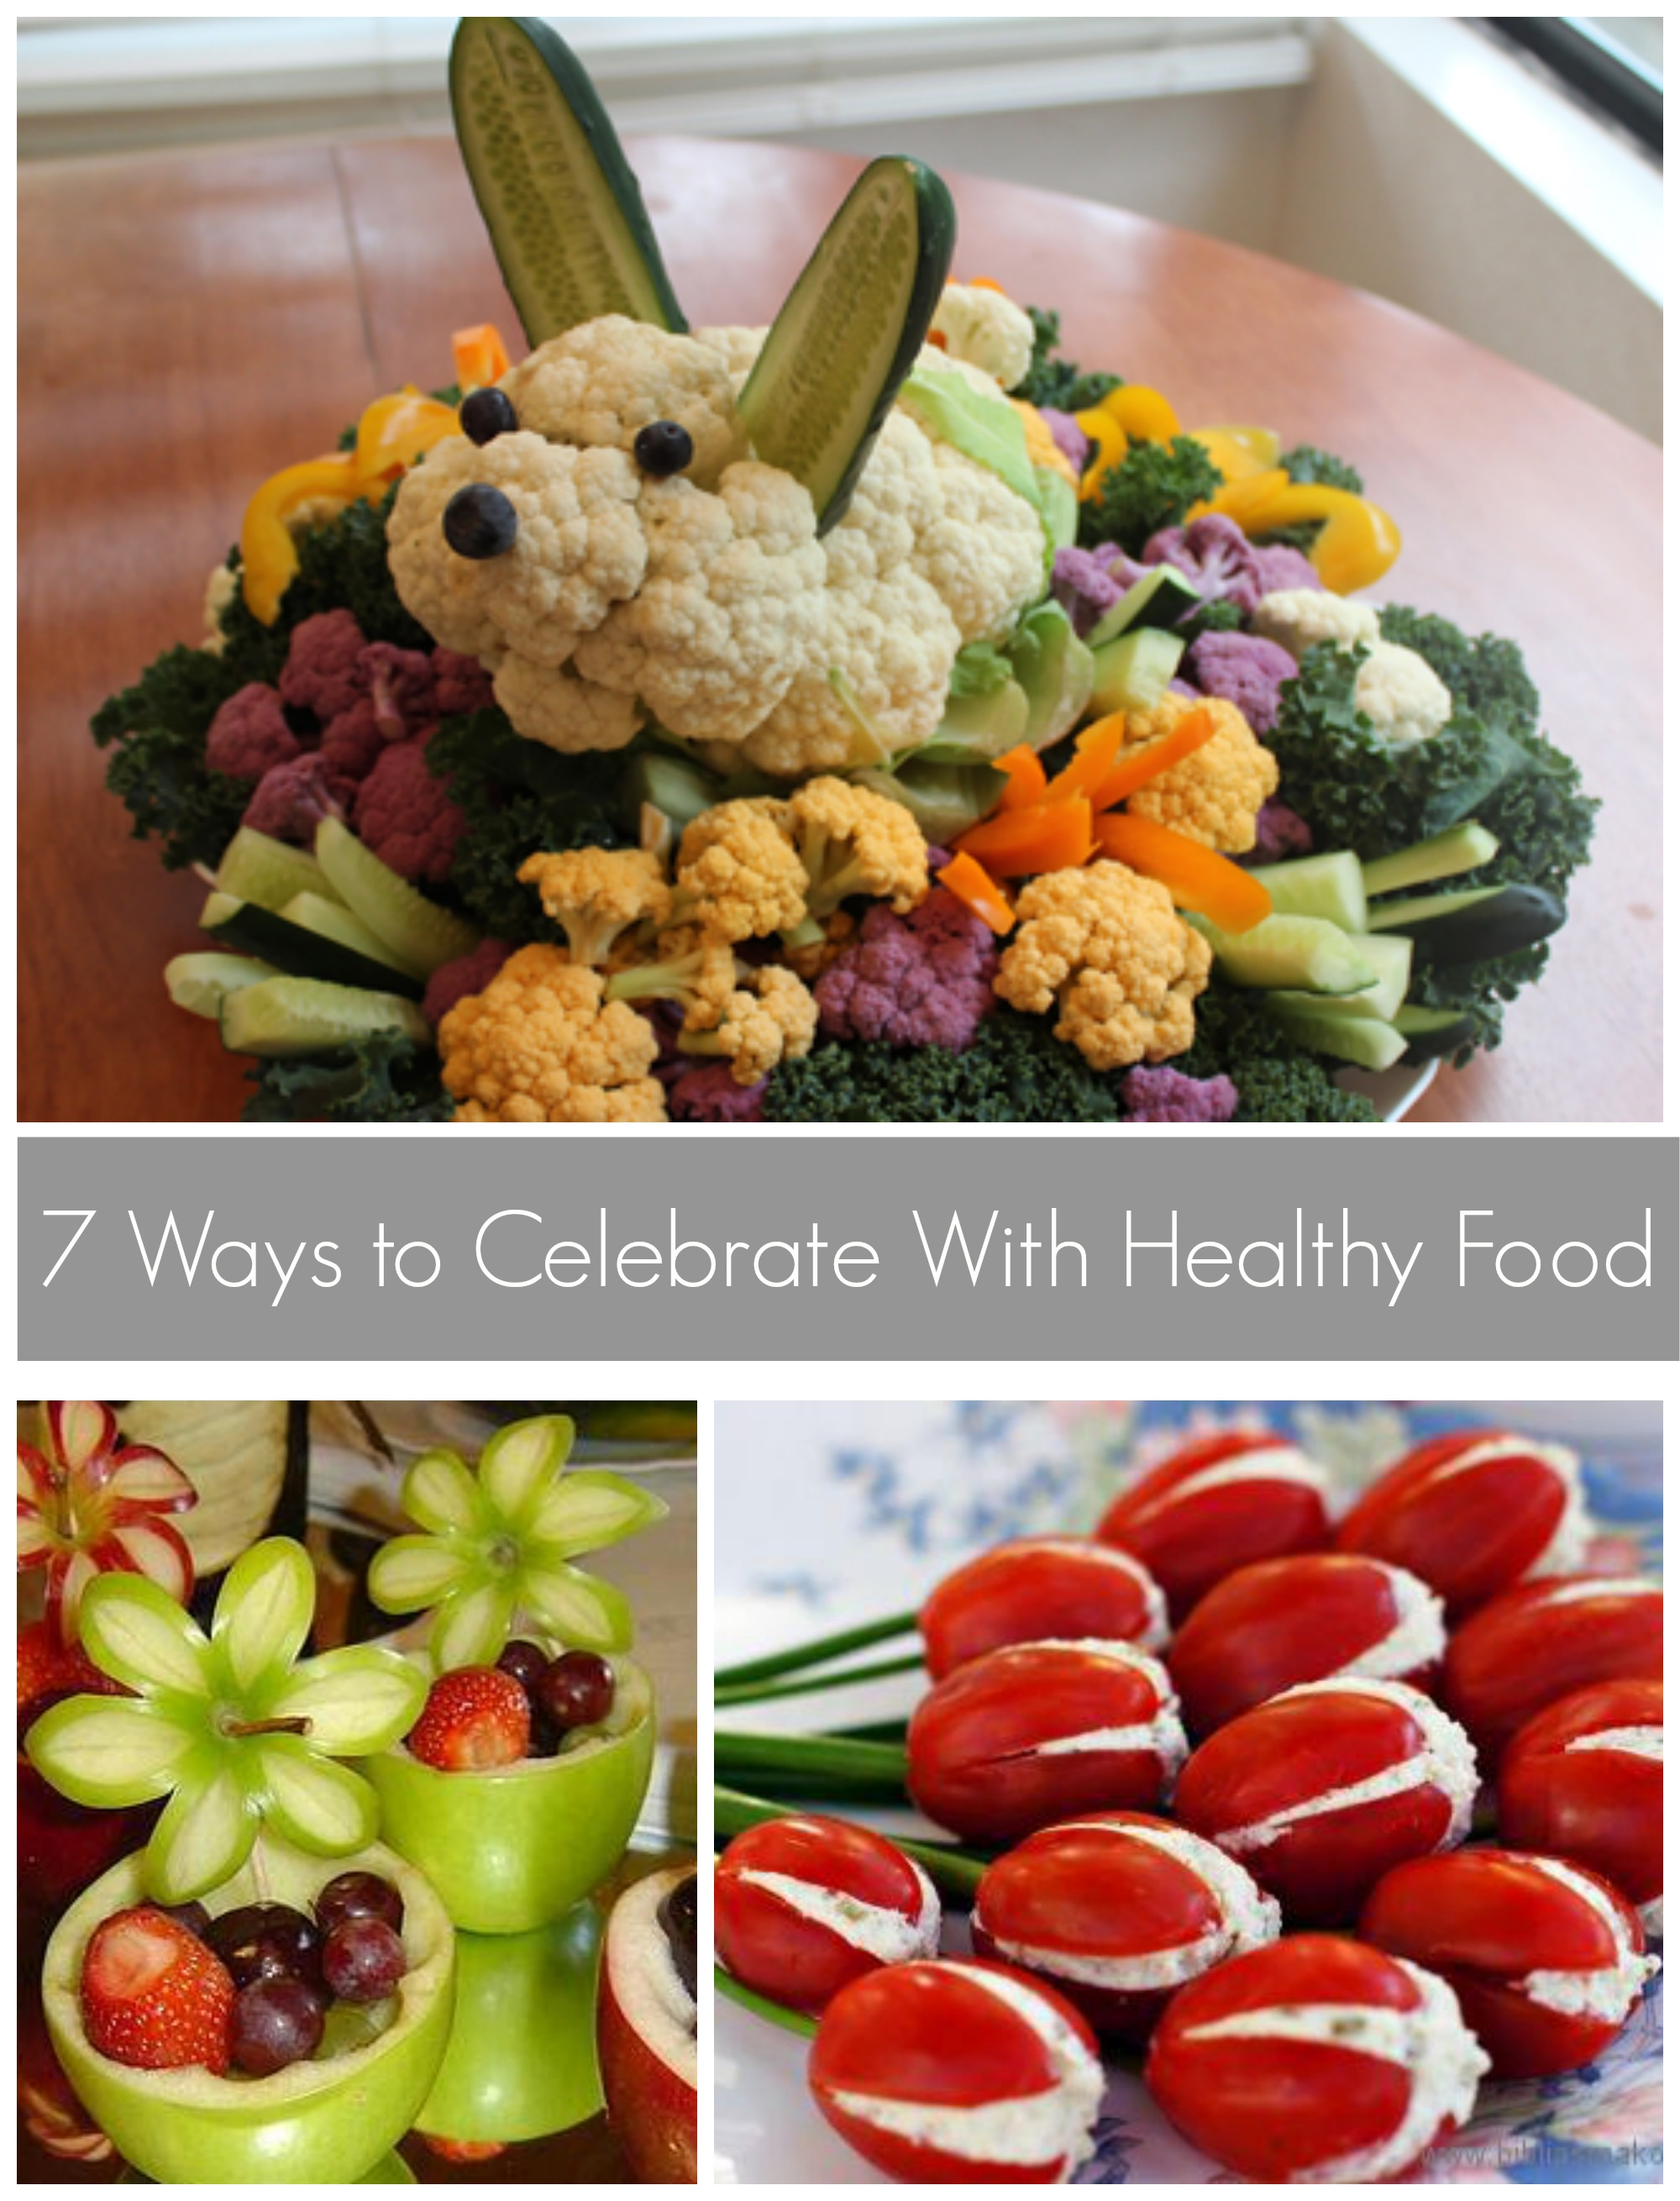 7 ways to celebrate with healthy food.jpg